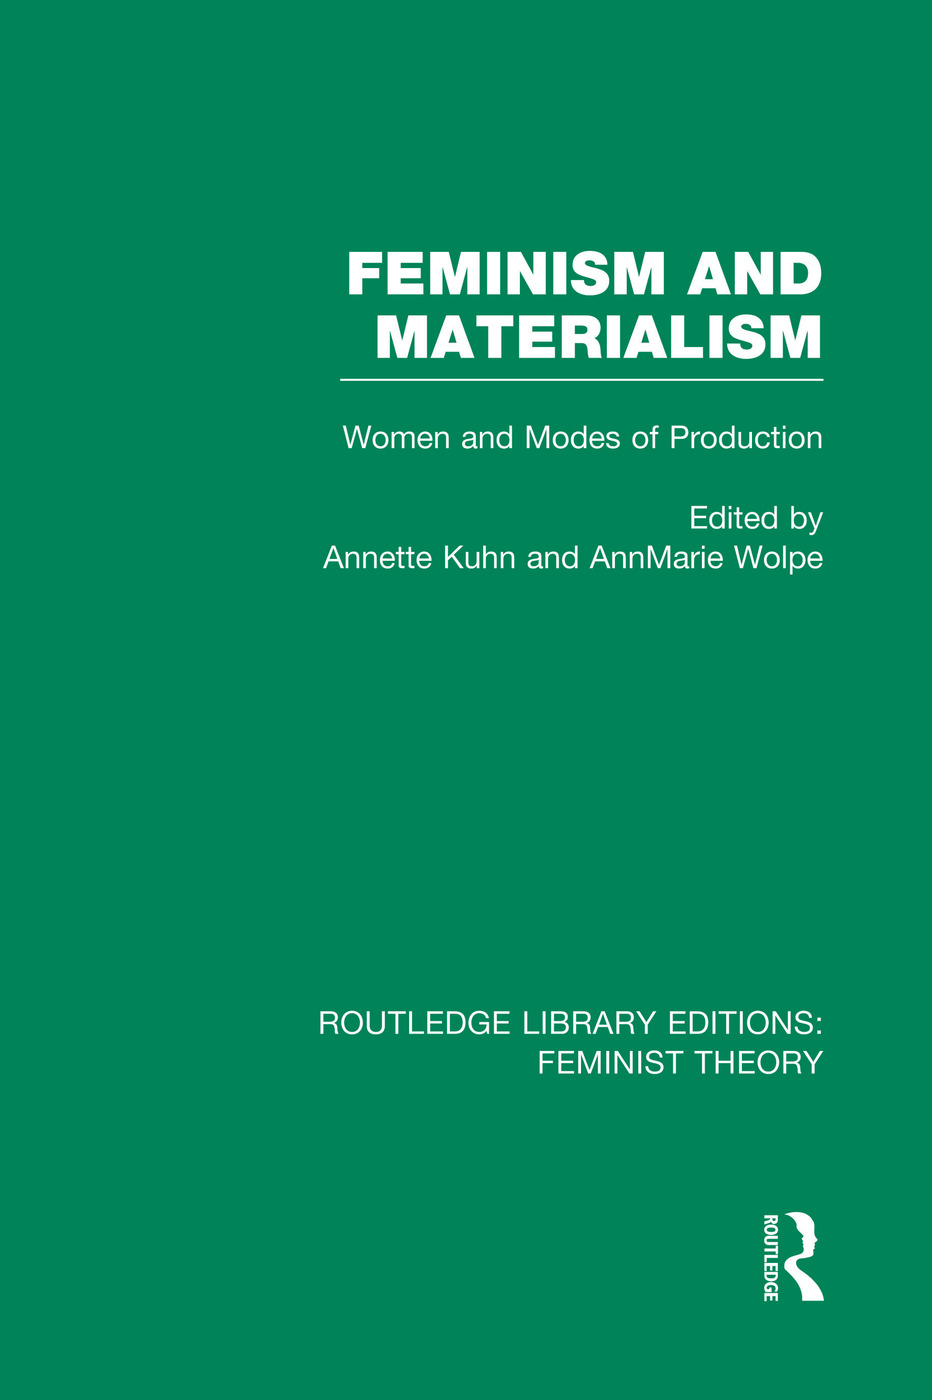 Feminism and Materialism (RLE Feminist Theory): Women and Modes of Production book cover